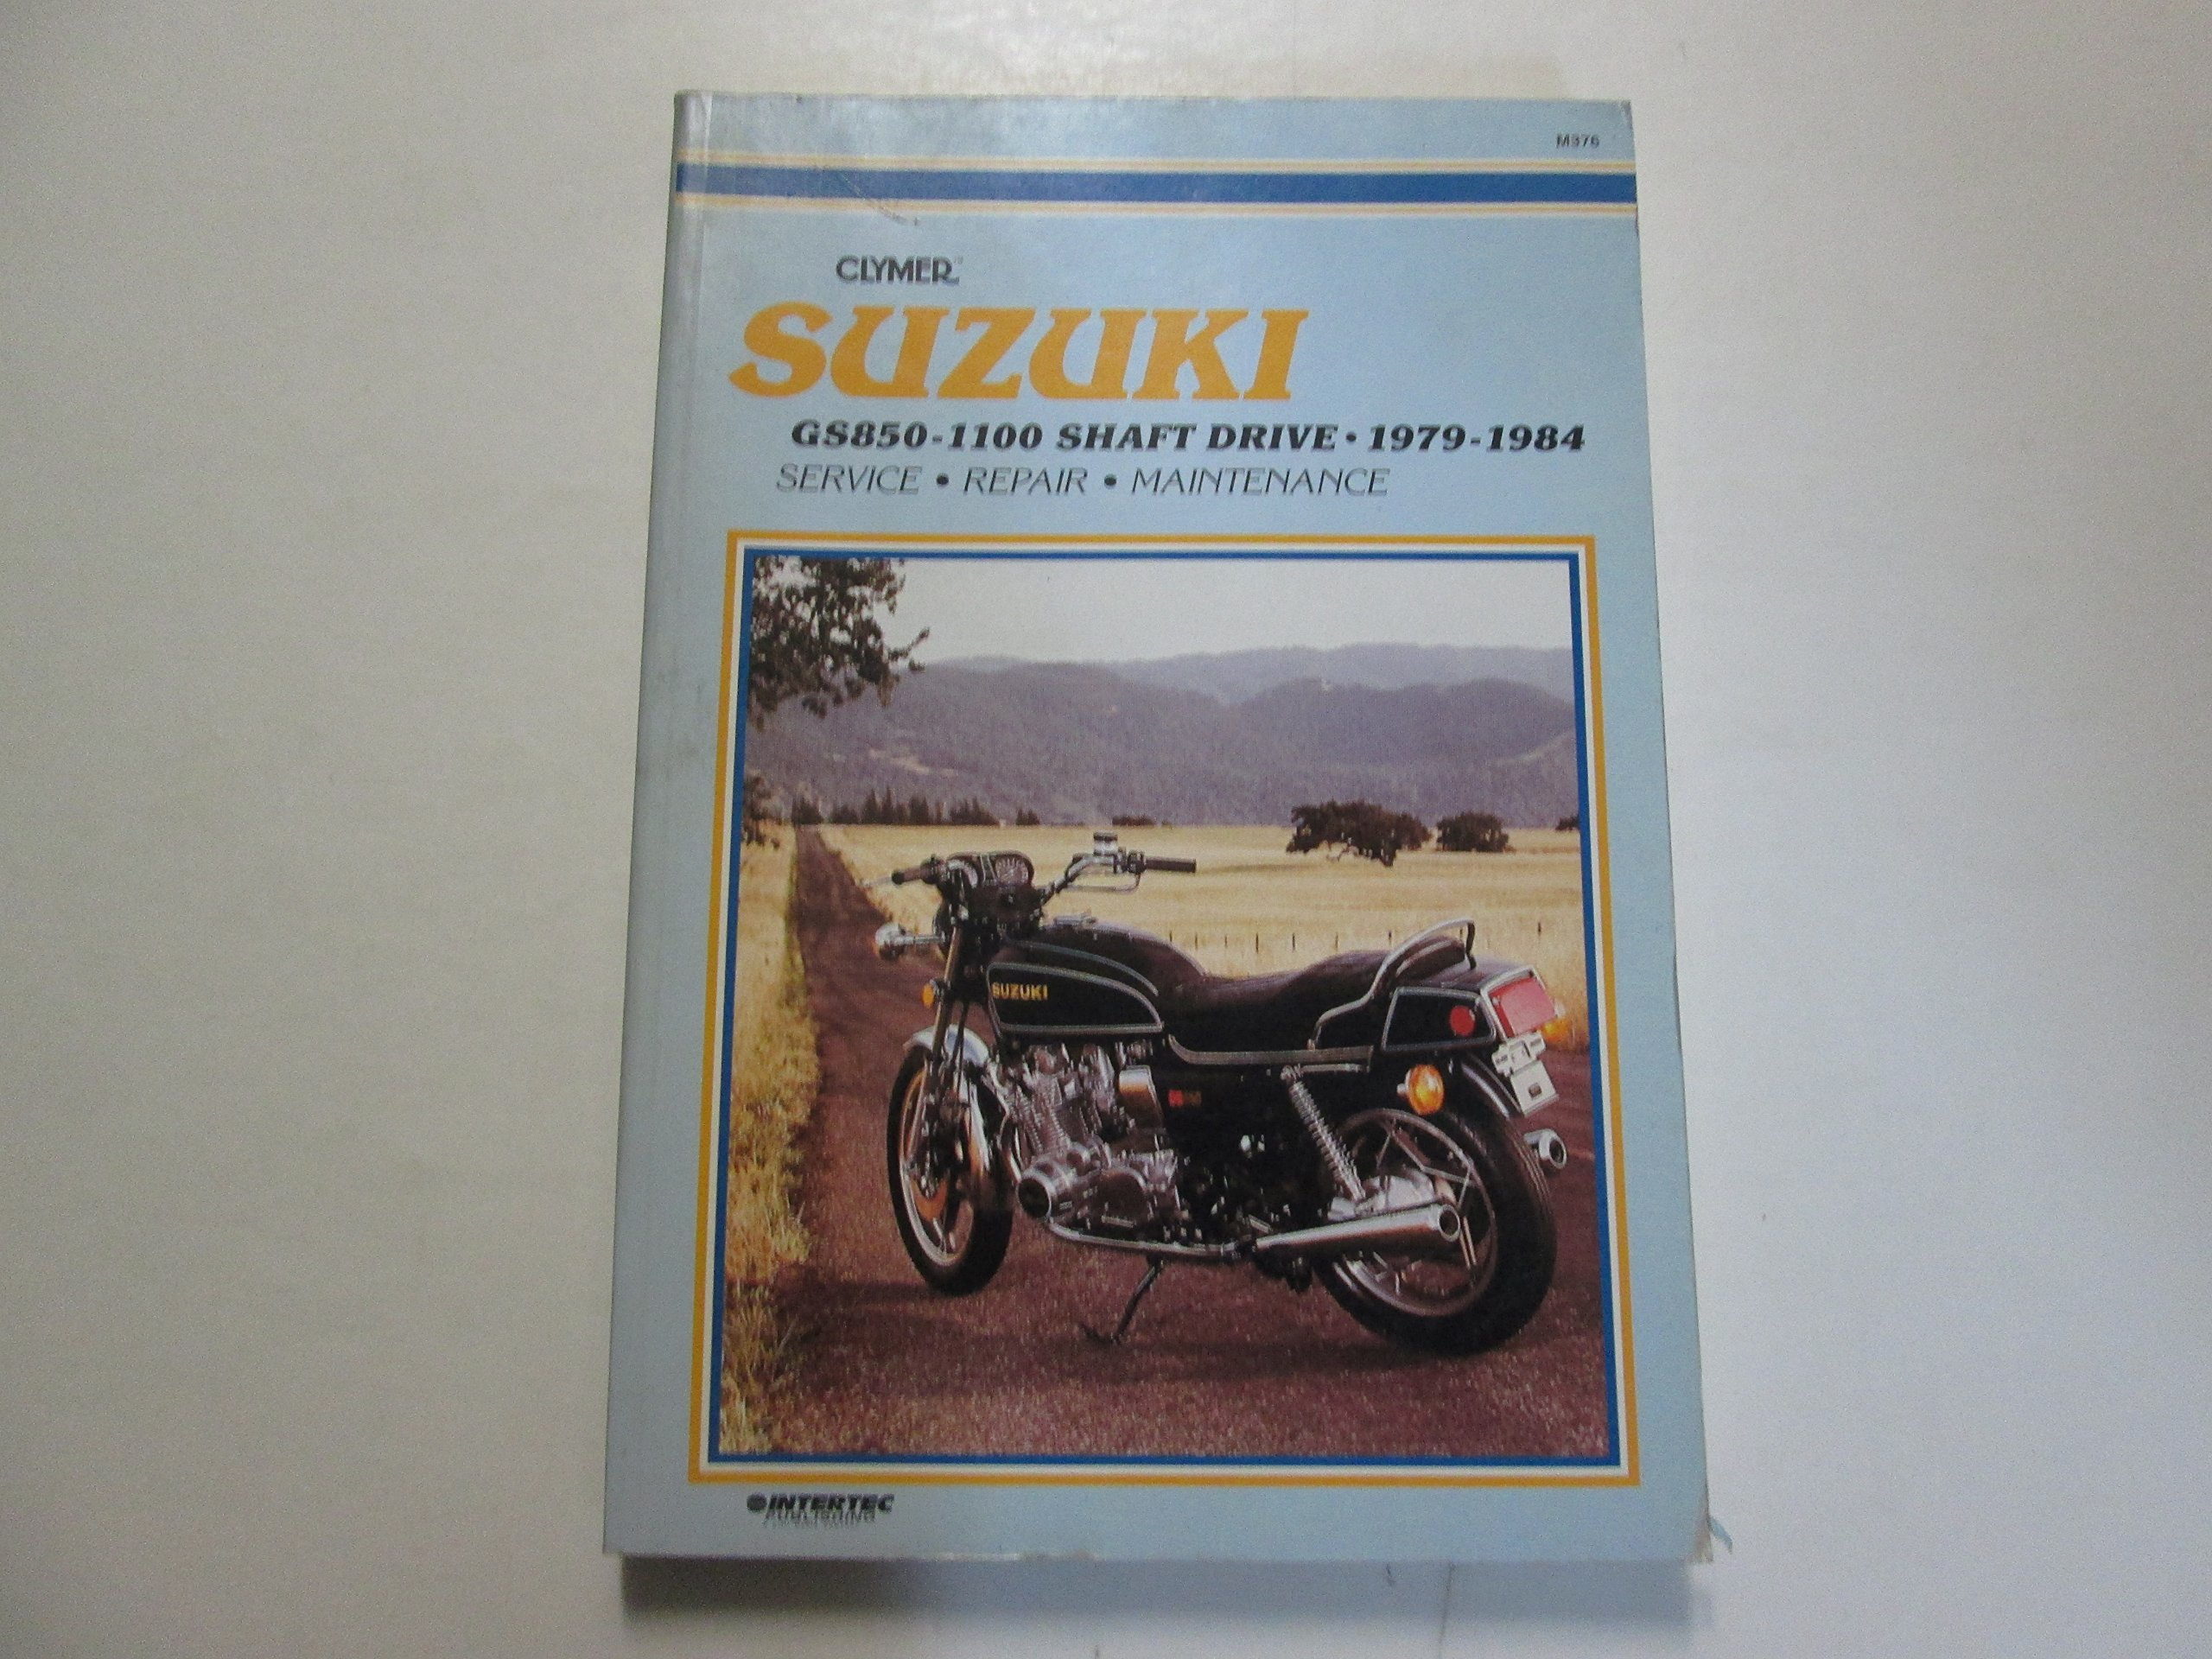 1979 1984 Clymer Suzuki GS850 1100 Shaft Drive Service Repair Maintenance  Manual: Suzuki: Amazon.com: Books